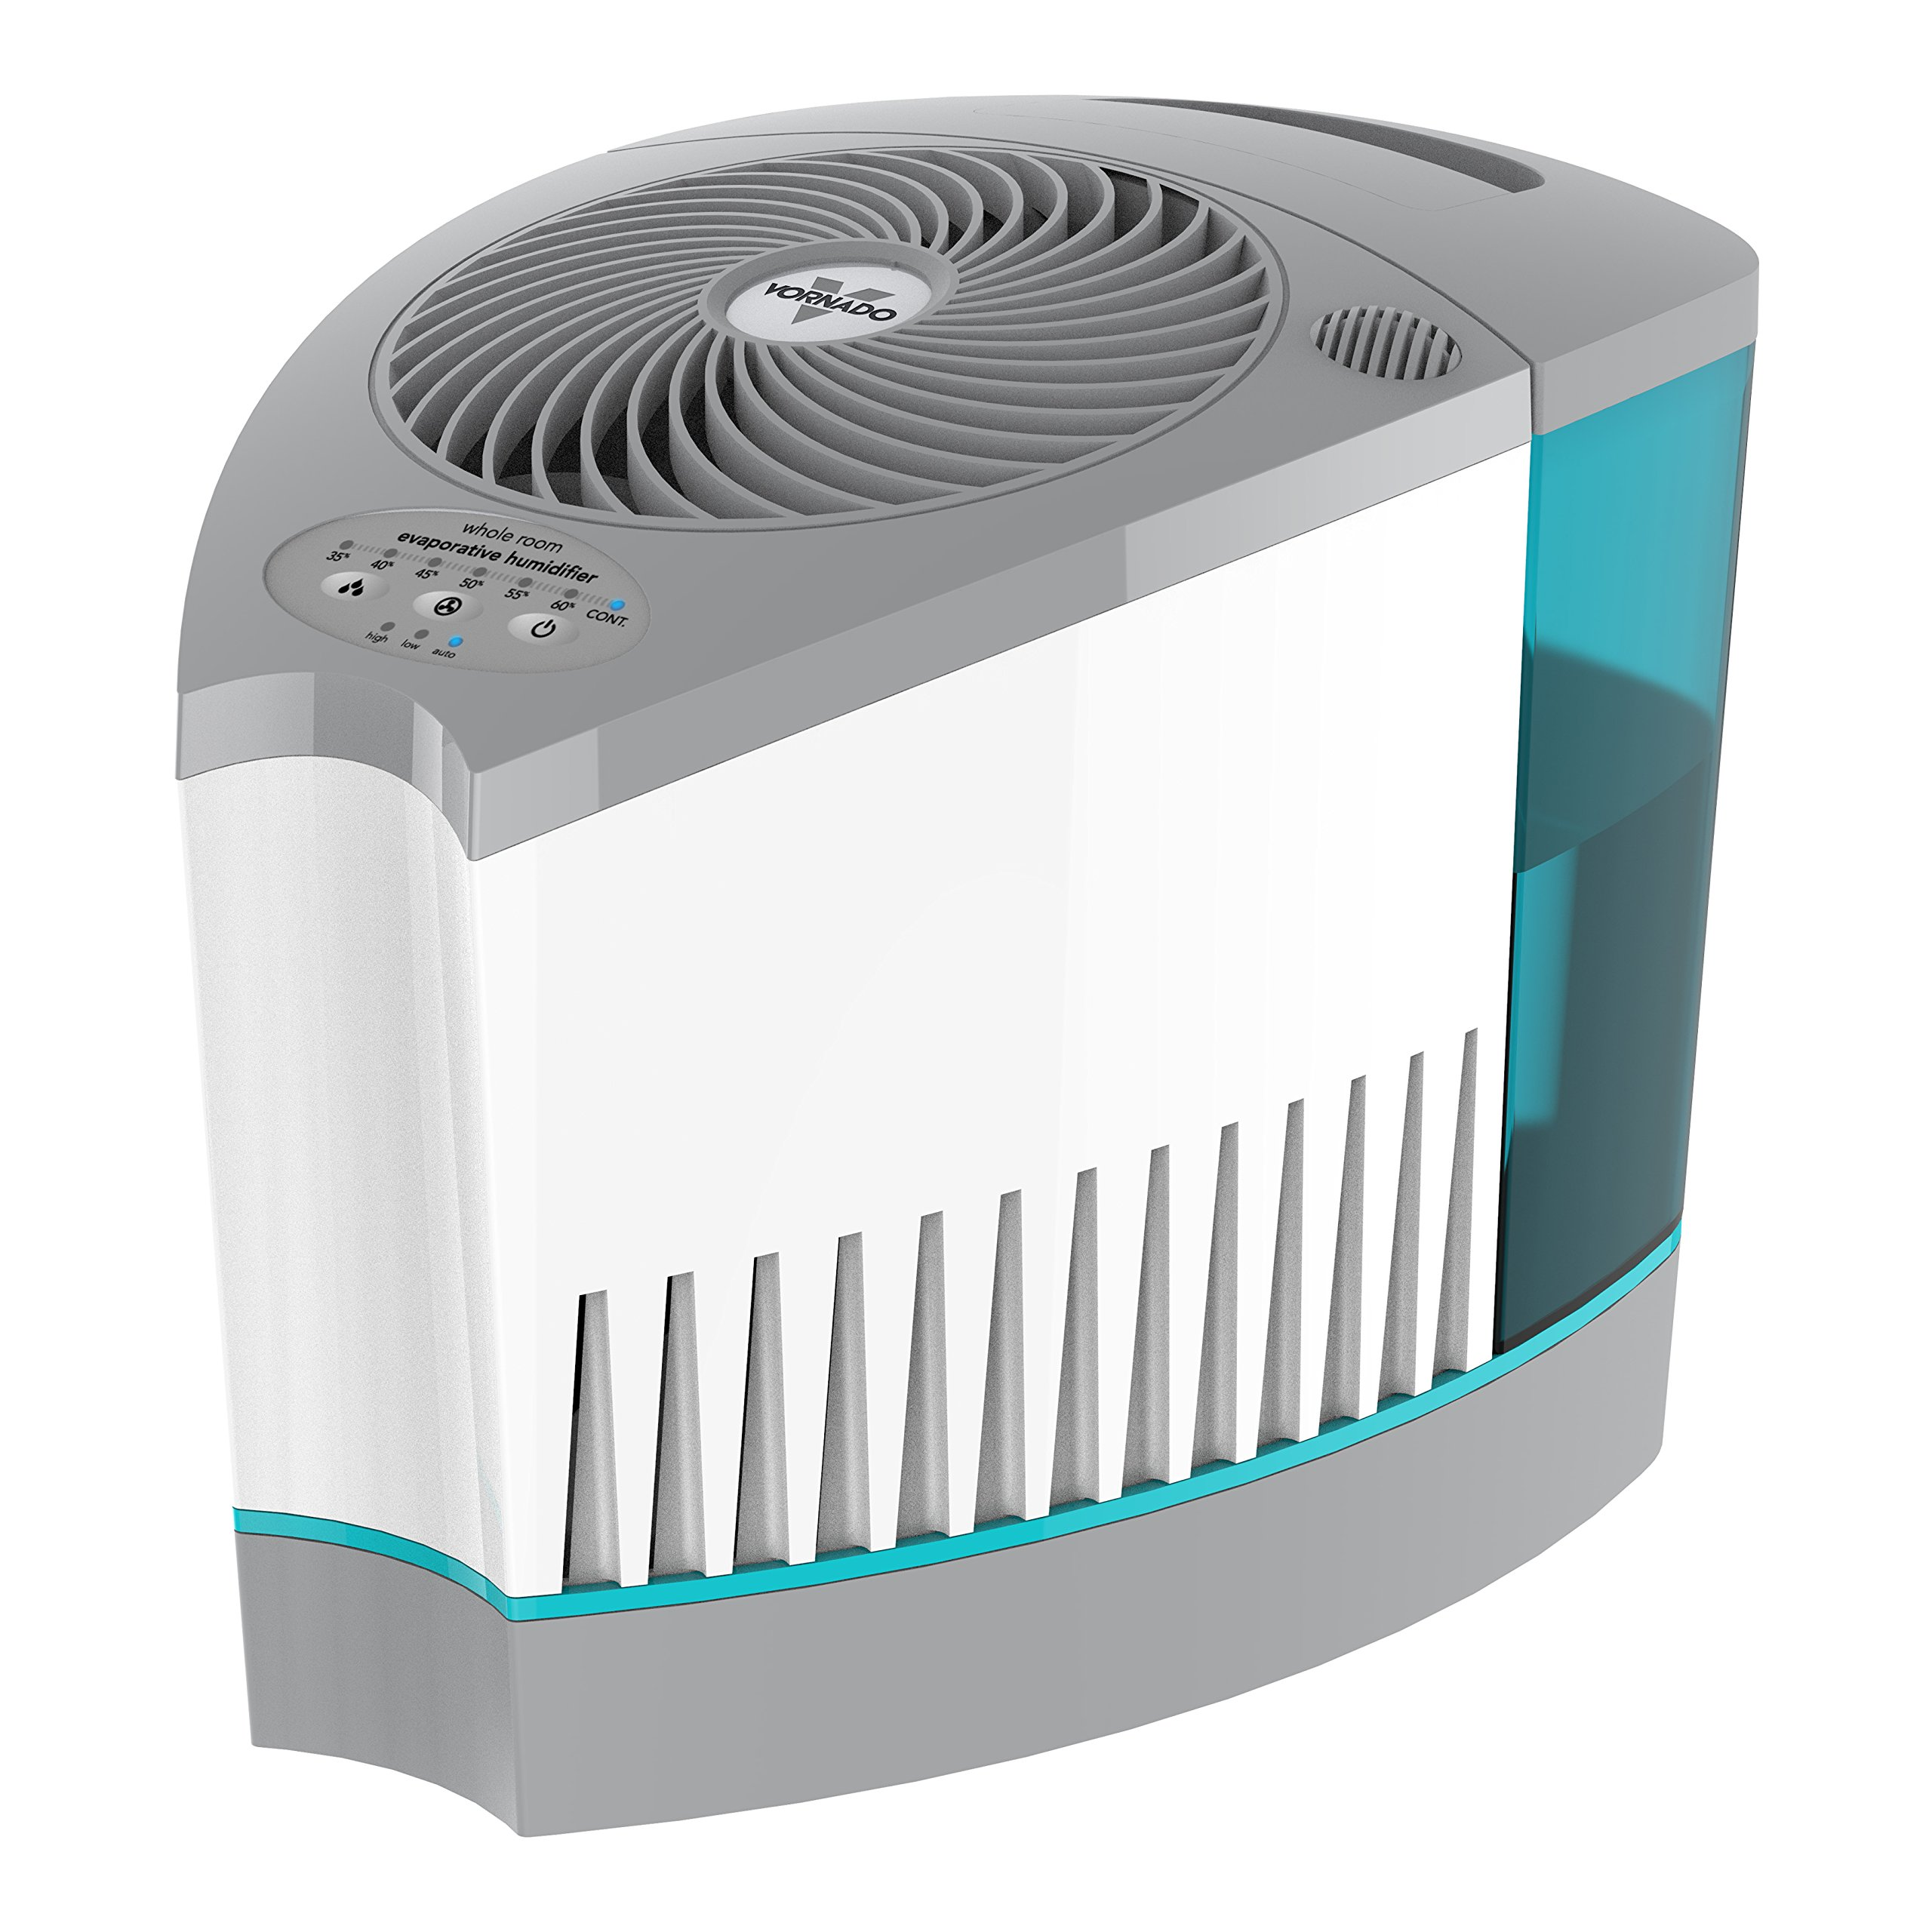 Vornado Evap3 Whole Room Evaporative Humidifier White New eBay #2E949D